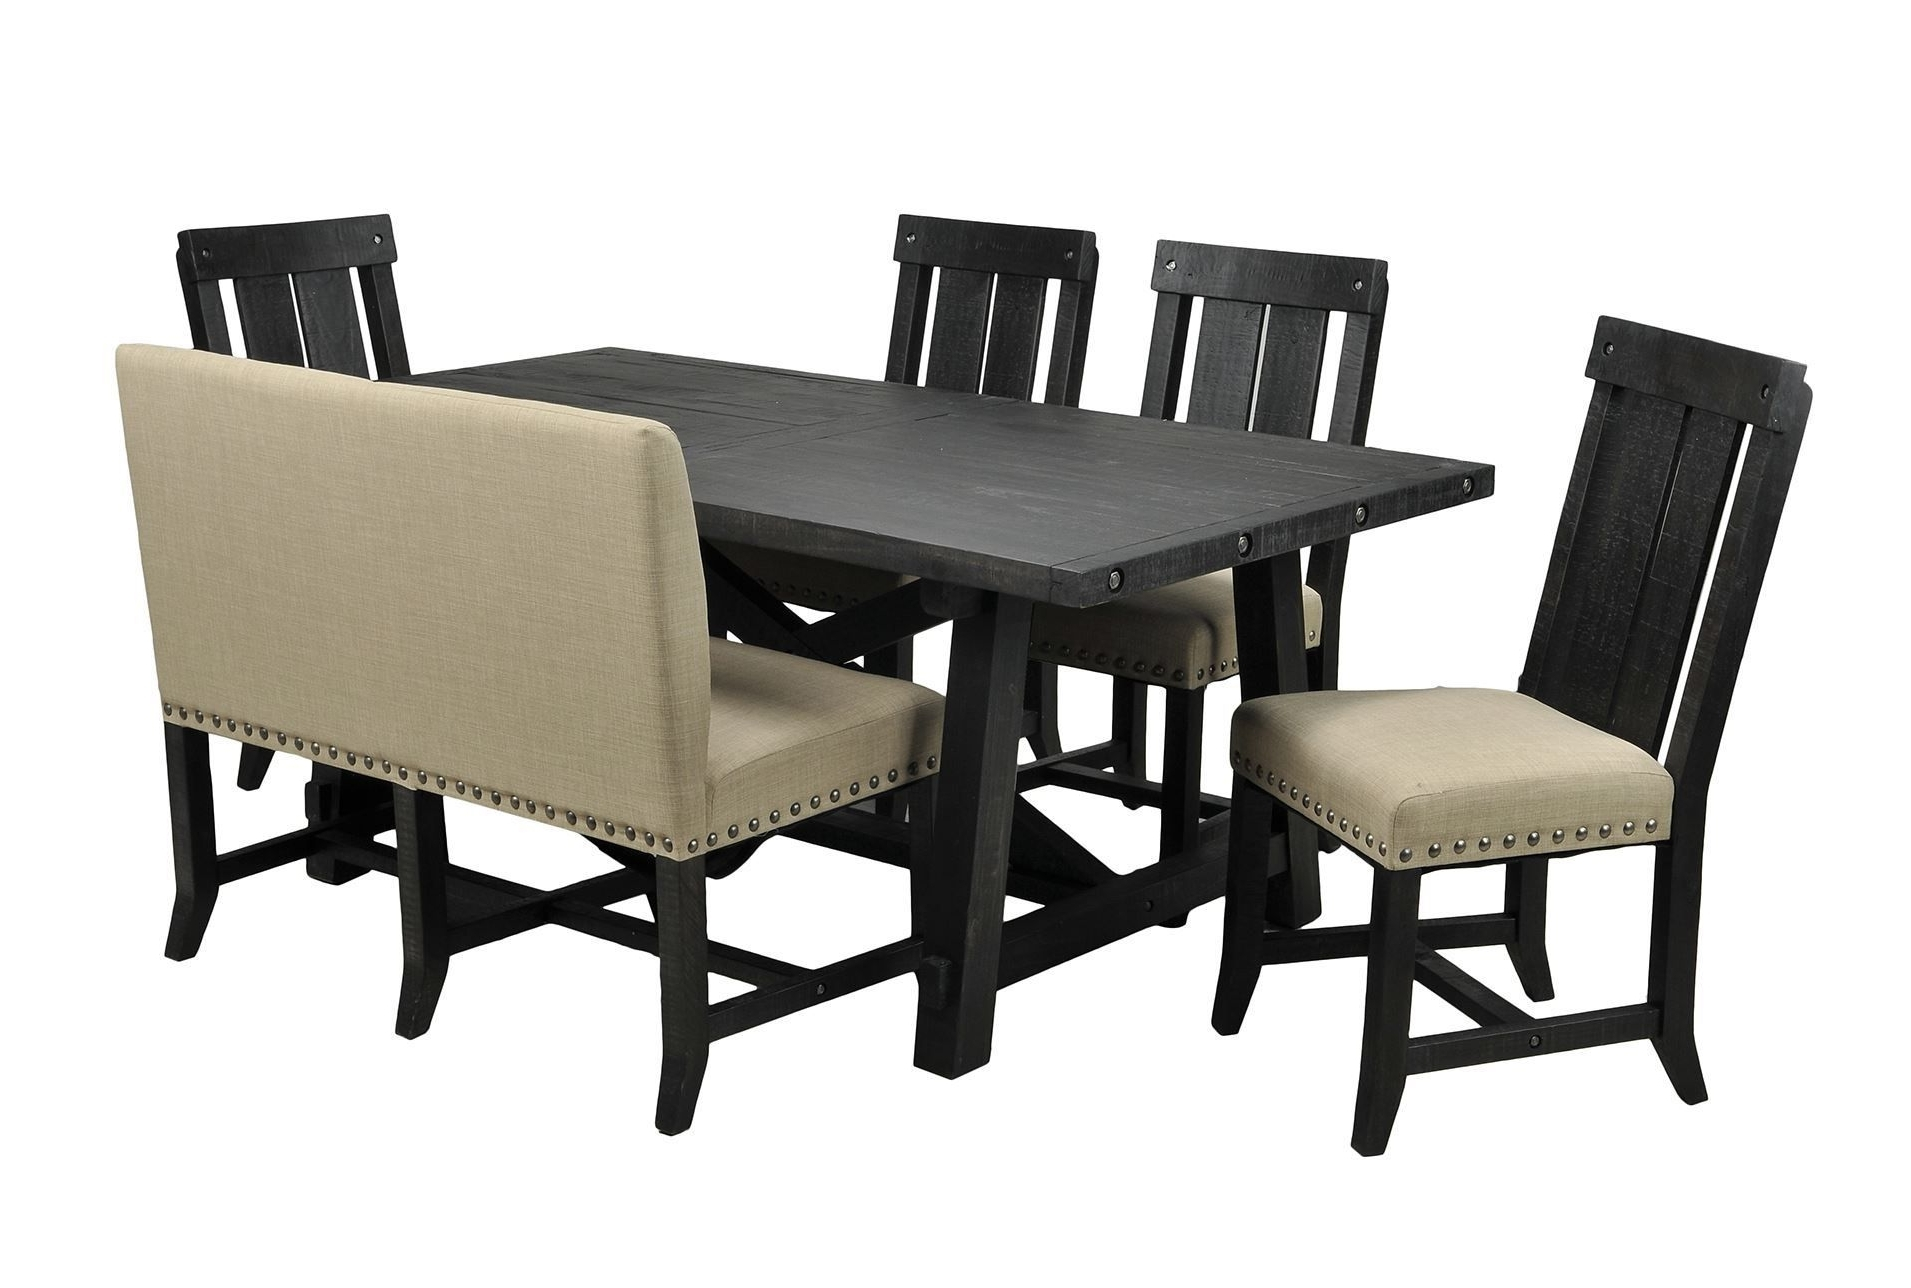 Jaxon 6 Piece Rectangle Dining Sets With Bench & Wood Chairs Pertaining To Famous Jaxon 6 Piece Rectangle Dining Set W/bench & Wood Chairs, Café (View 3 of 25)